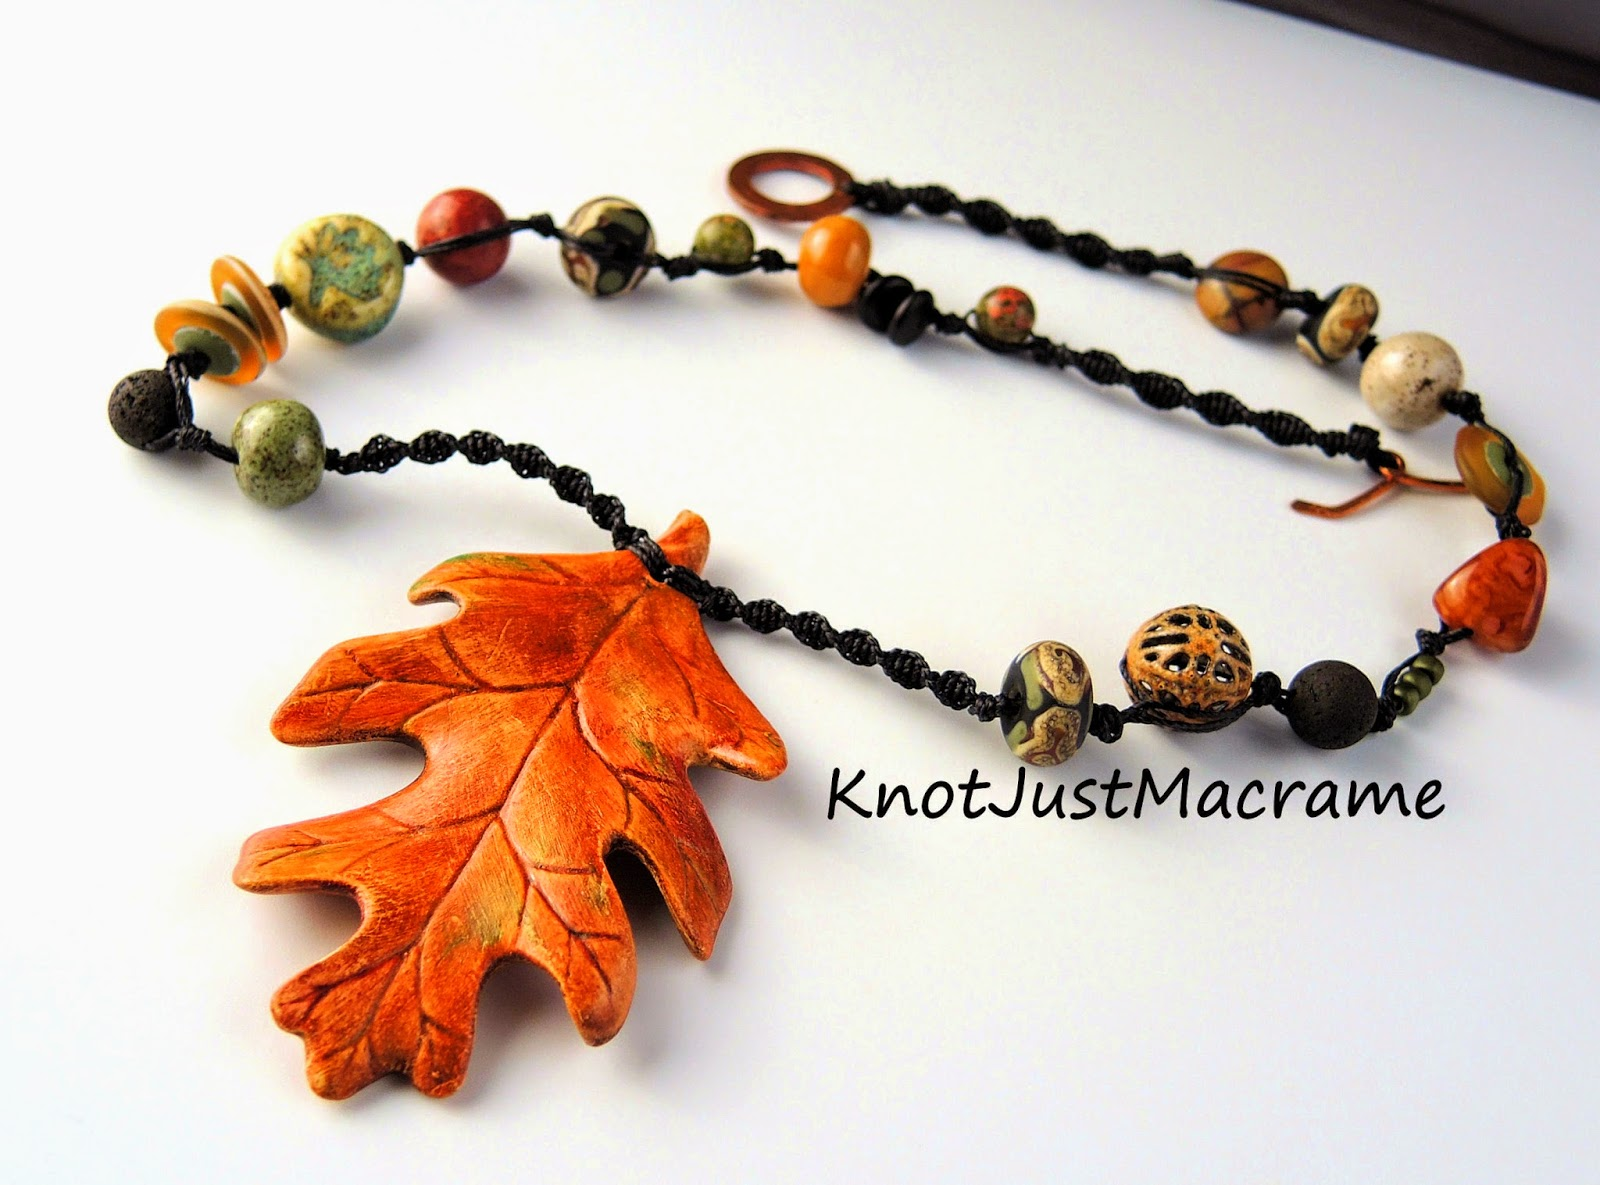 Macrame necklace by Sherri Stokey with ceramic leaf pendant by Marla James.